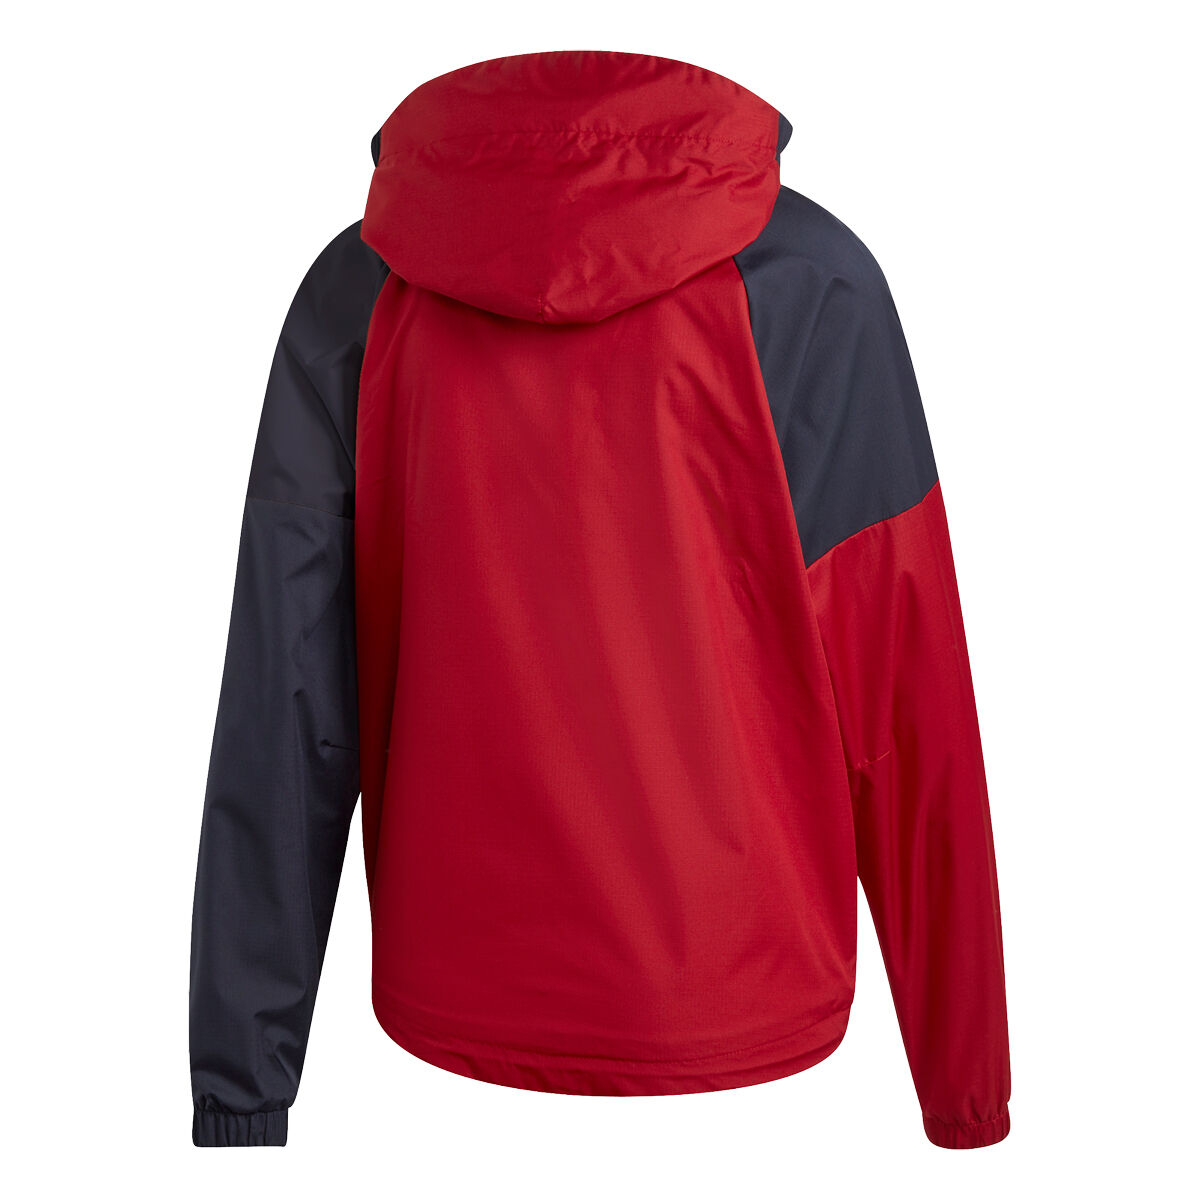 Youth New York Red Bulls adidas Red Full Zip Travel Jacket